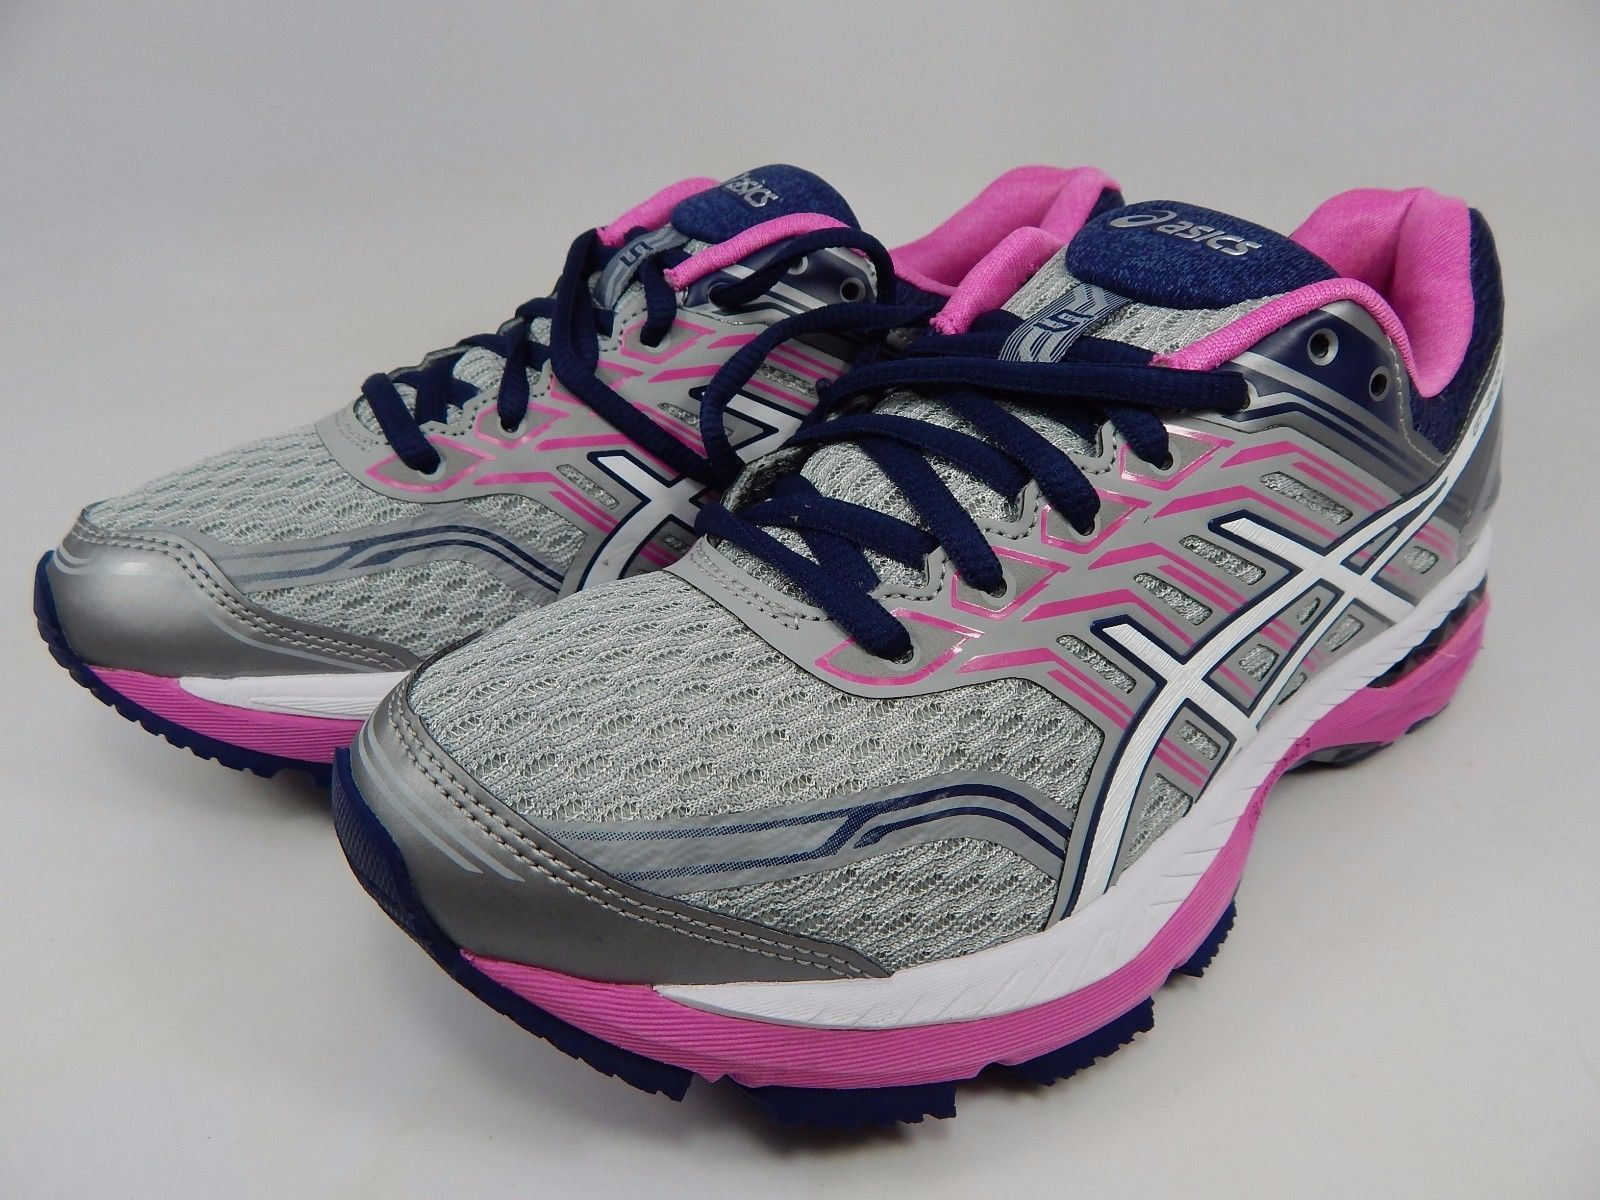 Asics GT 2000 v 5 Women's Running Shoes Size US 7 M (B) EU 38 Silver Blue T757N